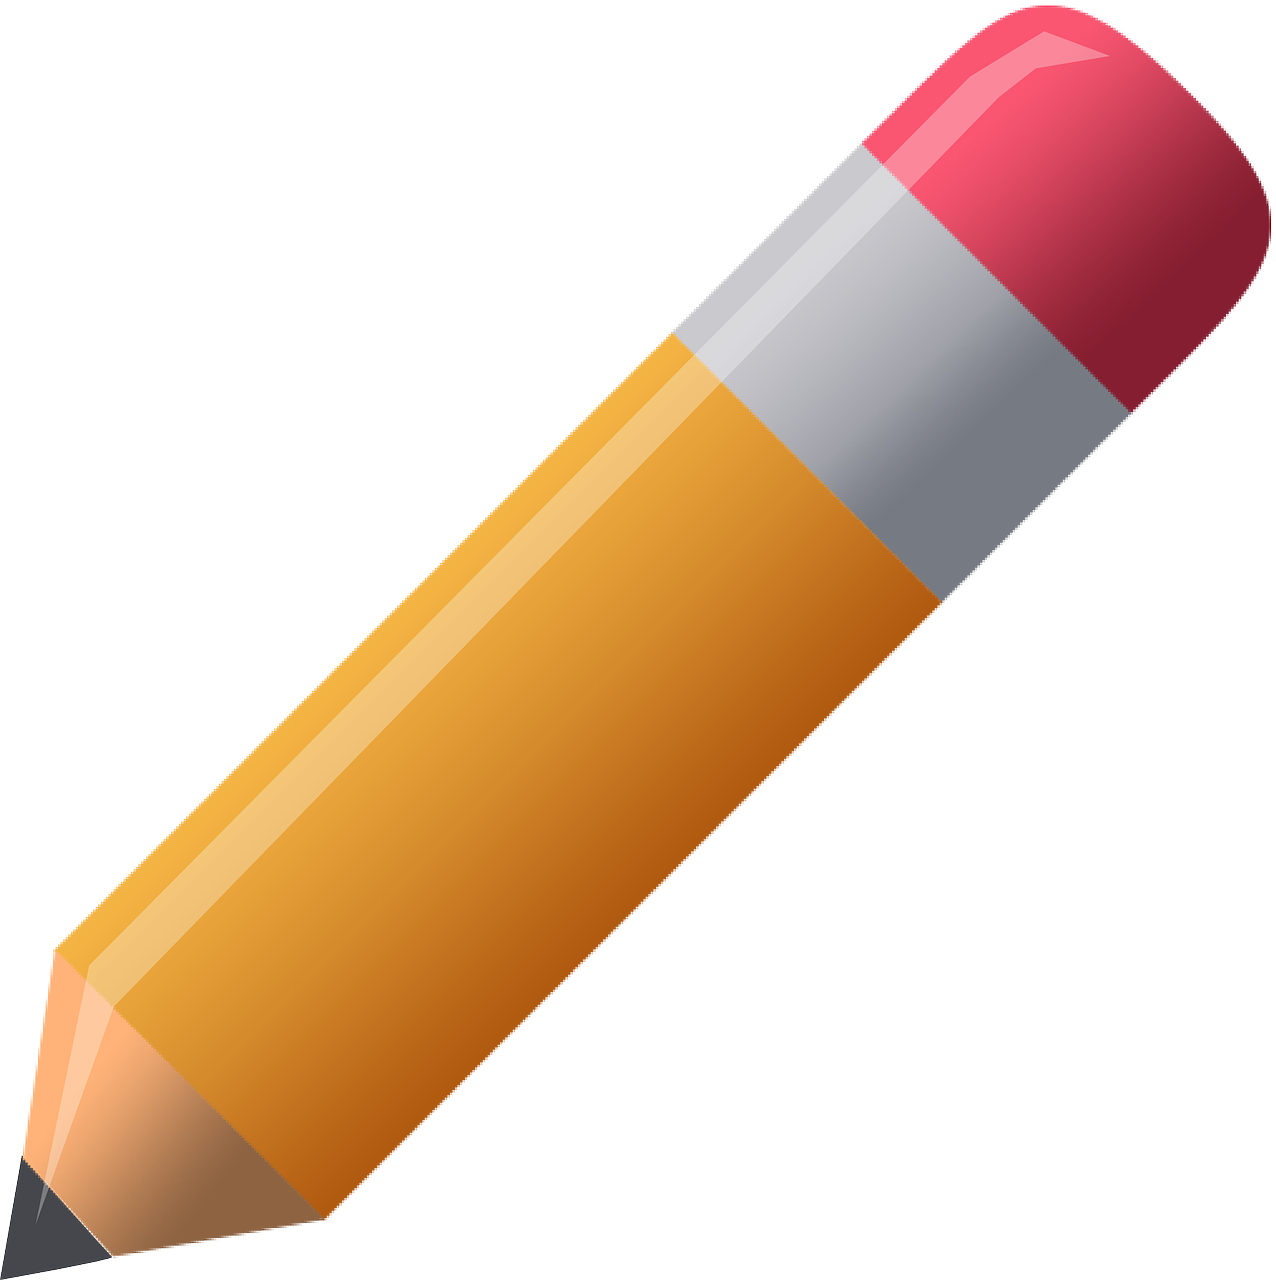 Free Stubby Pencil Clip Art.